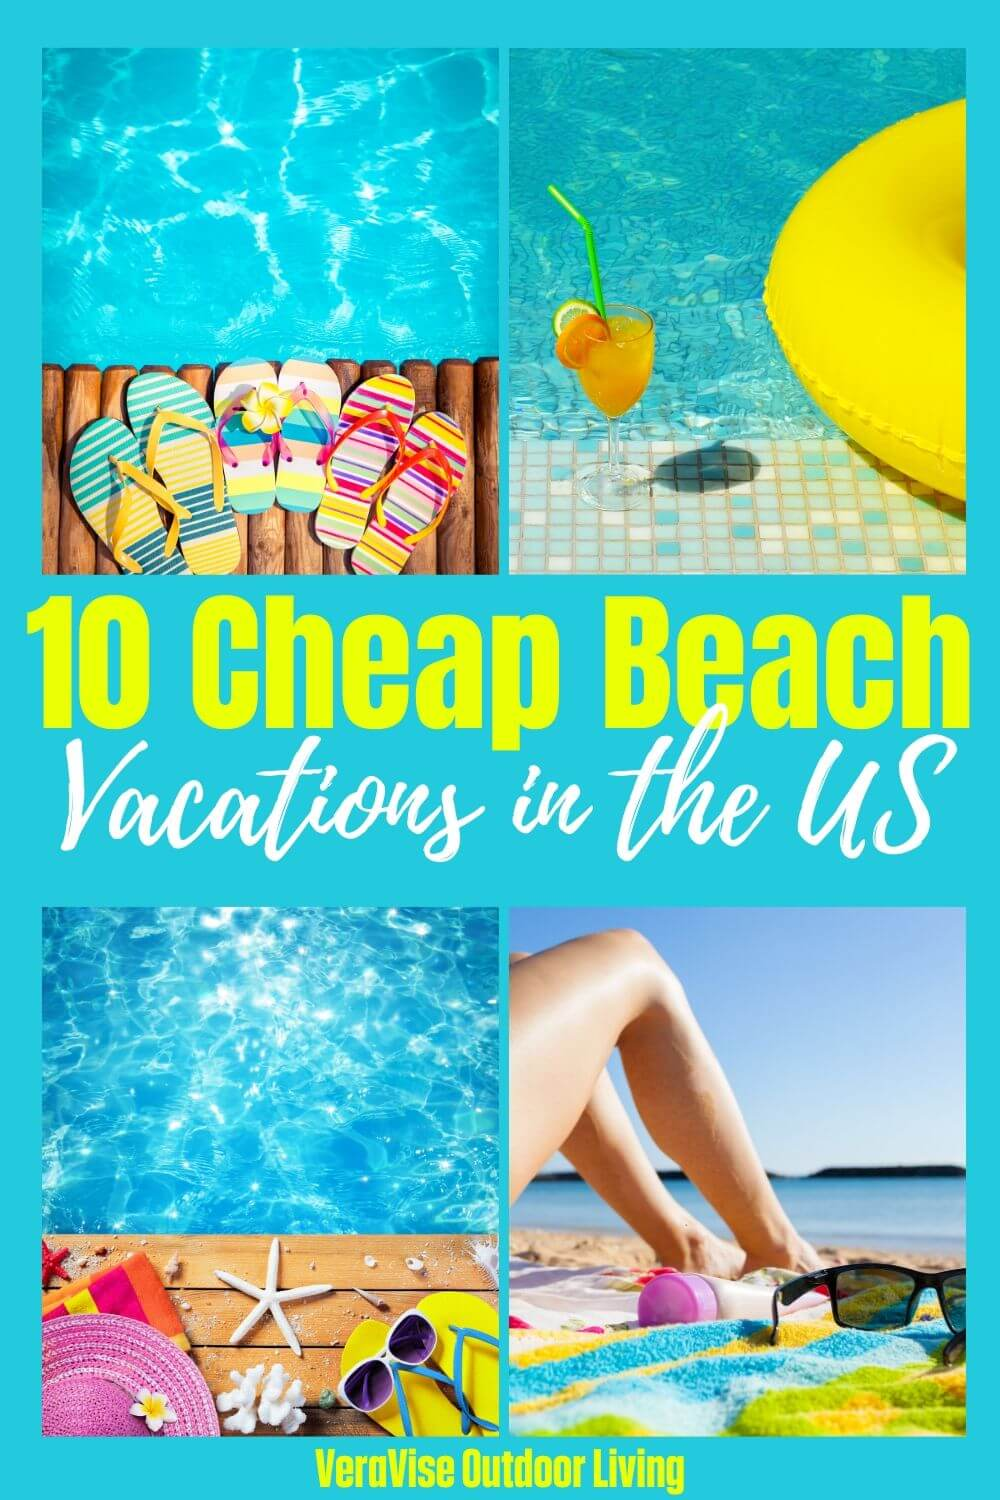 If you are looking for a cheap beach vacation this year, you will love these beautiful USA beaches for an affordable family beach trip. #beach #travel #budgettravel